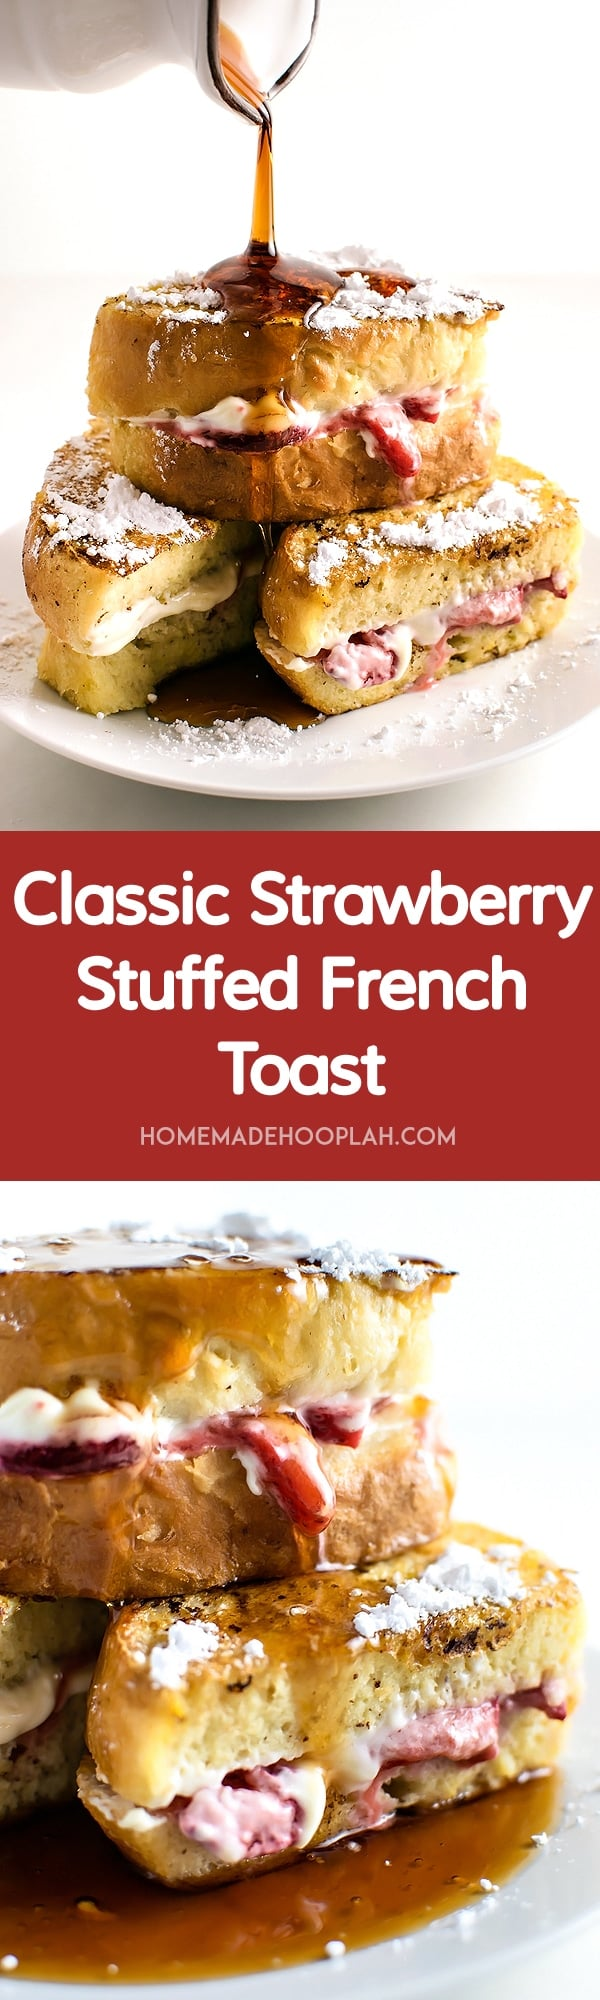 Classic Strawberry Stuffed French Toast! Vanilla and cinnamon french toast stuffed with sweet cream cheese filling and sugar coated strawberries. The classic indulgent breakfast!   HomemadeHooplah.com